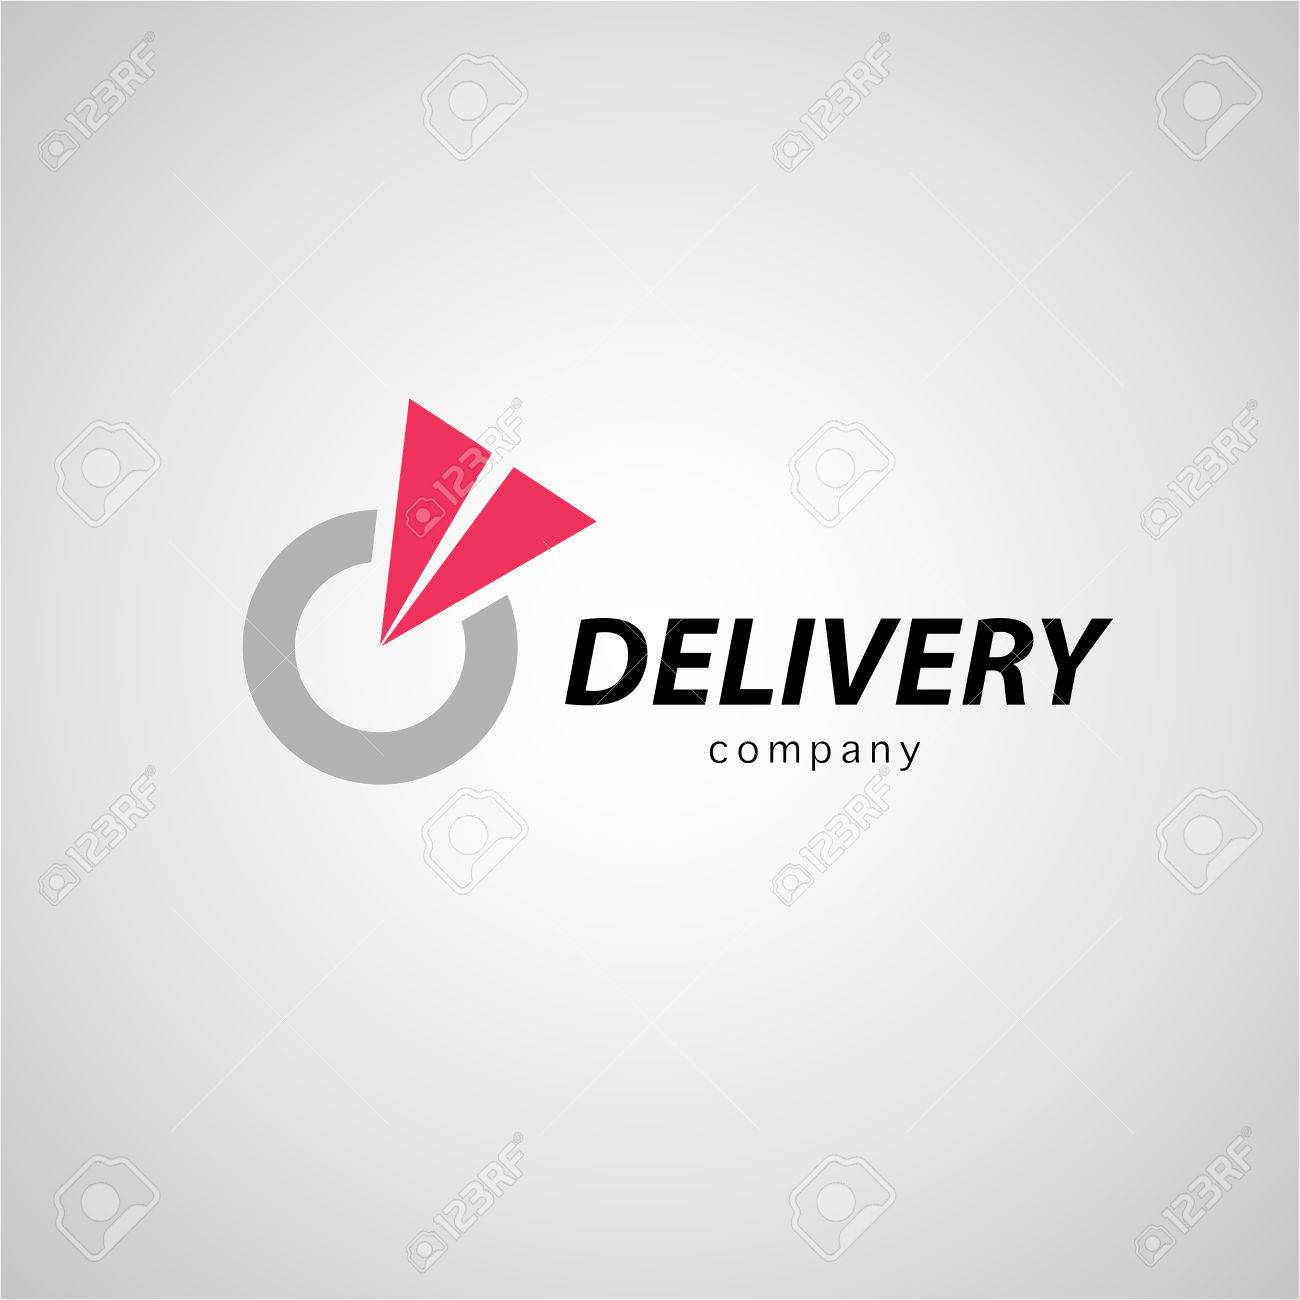 Vector flat logo template for logistics and delivery company. Shipping service insignia design. - 51163760